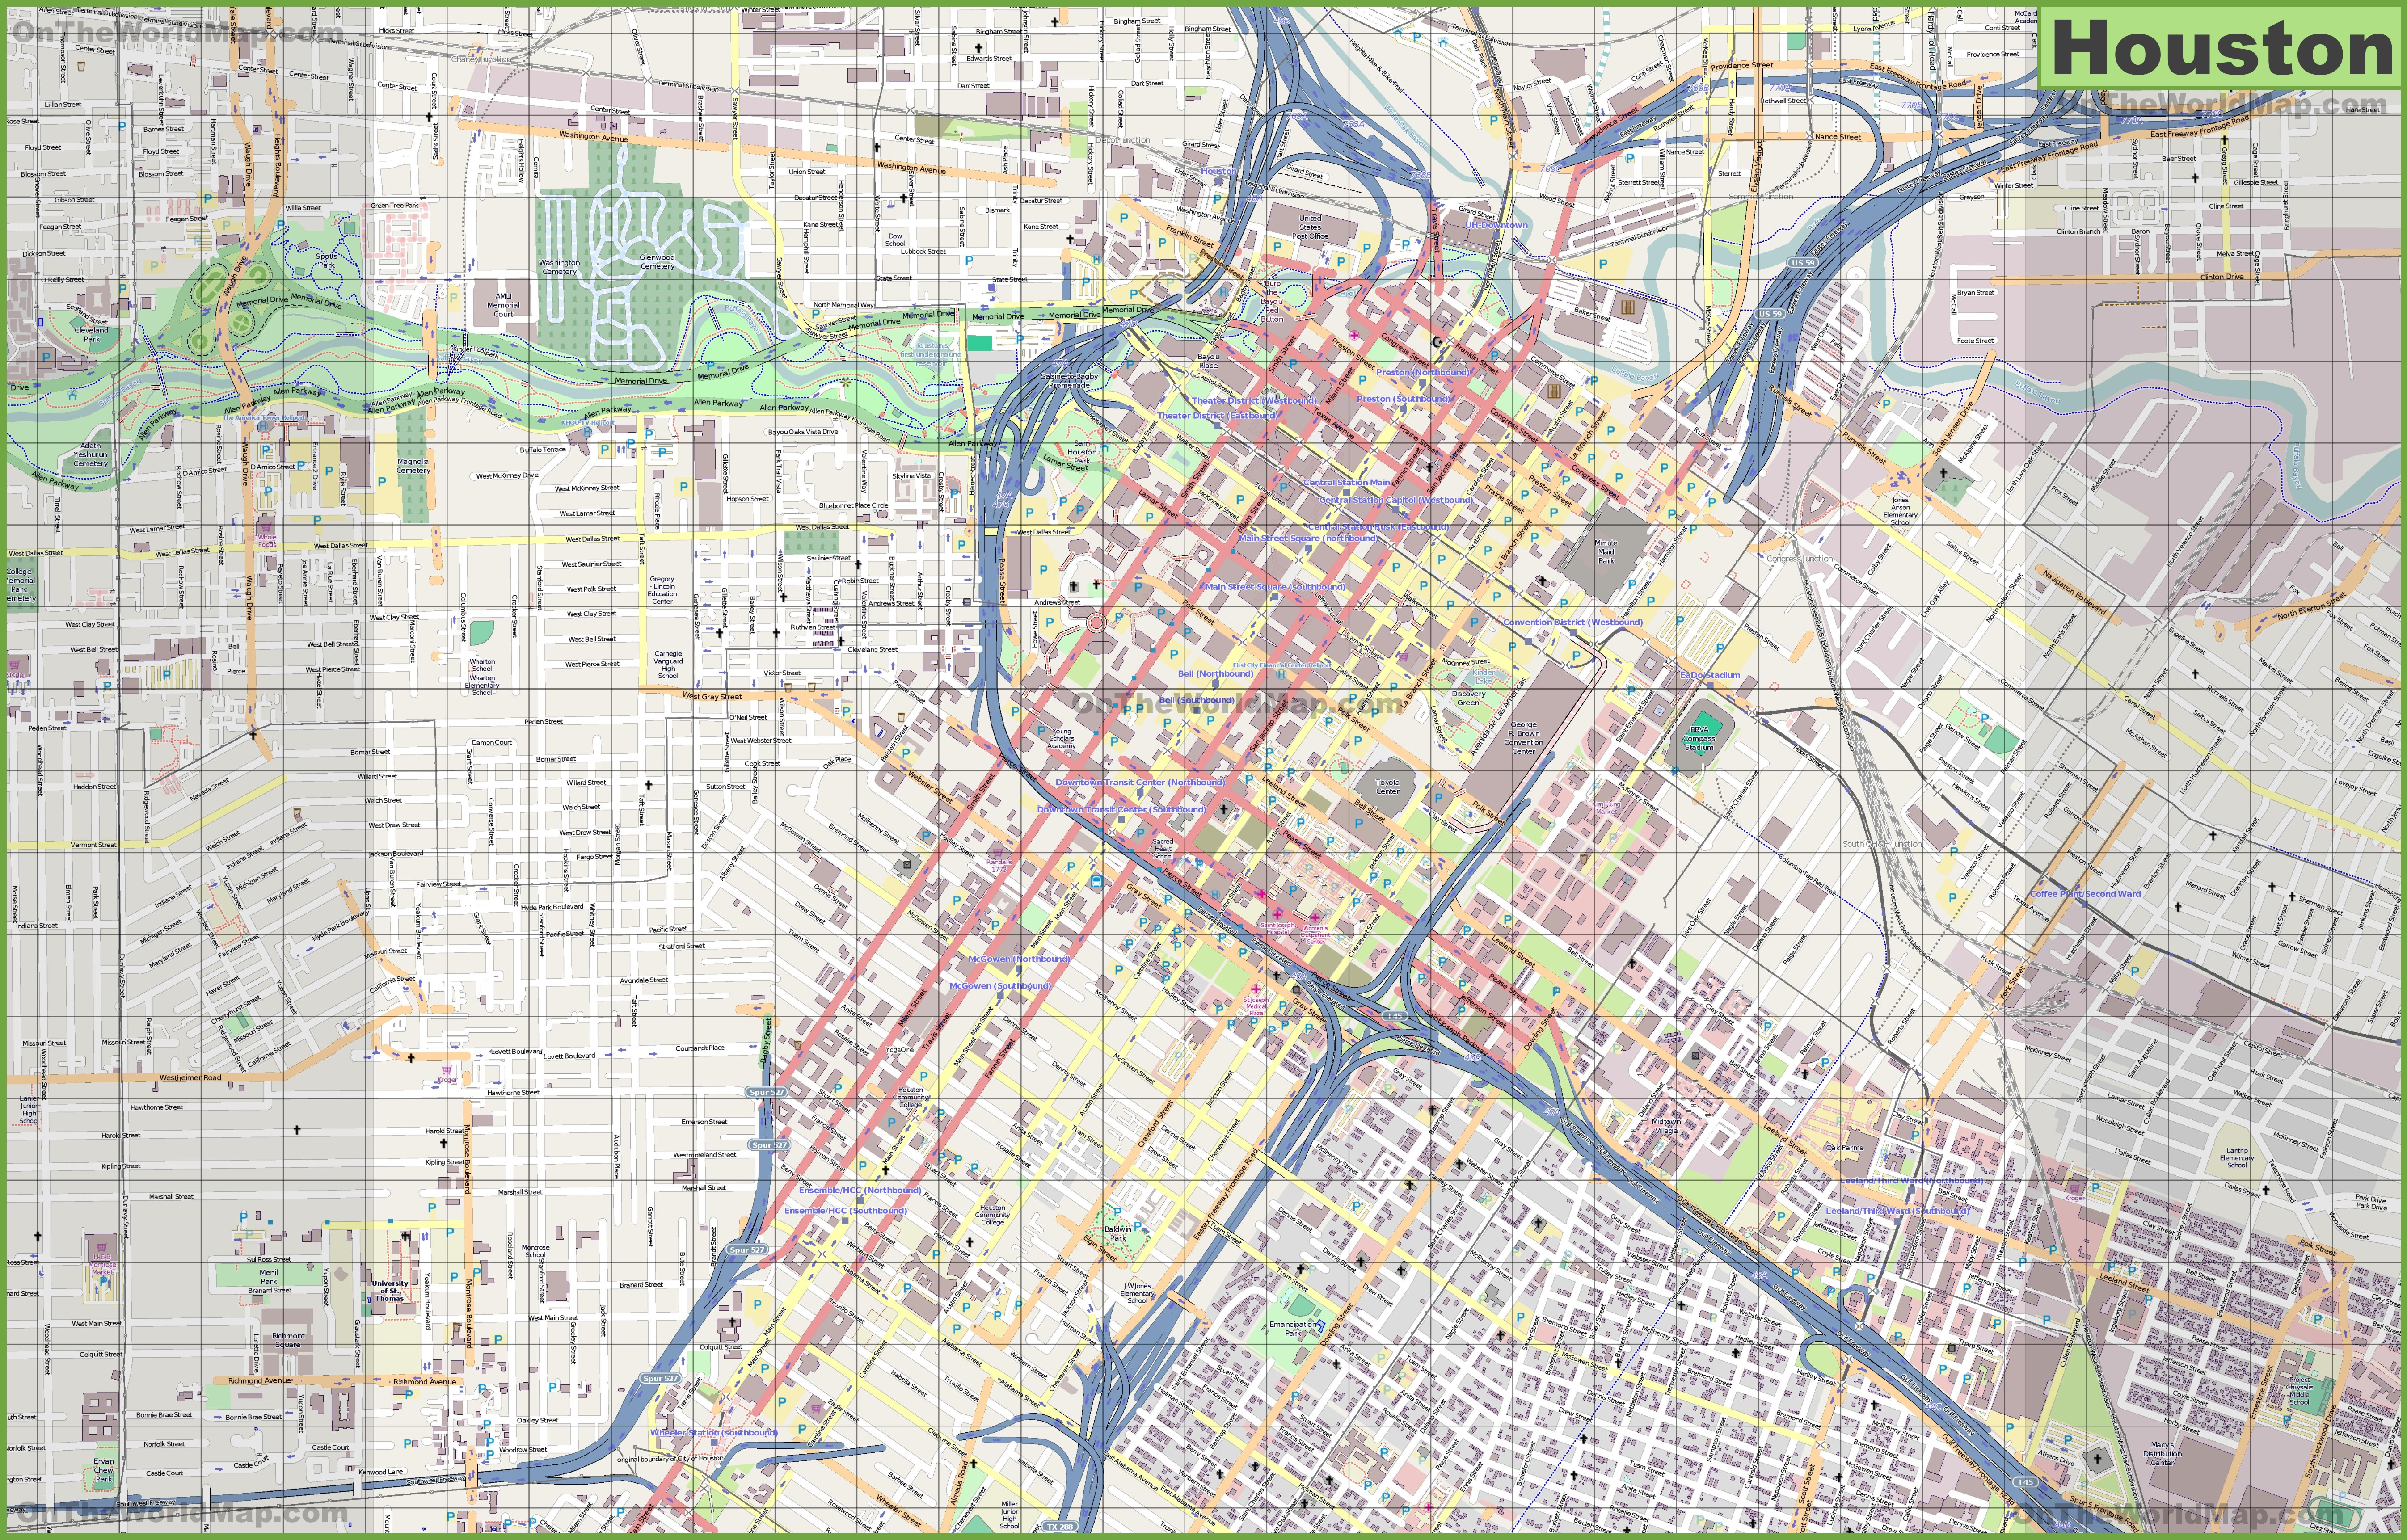 Houston Maps | Texas, U.s. | Maps Of Houston - Street Map Of Houston Texas